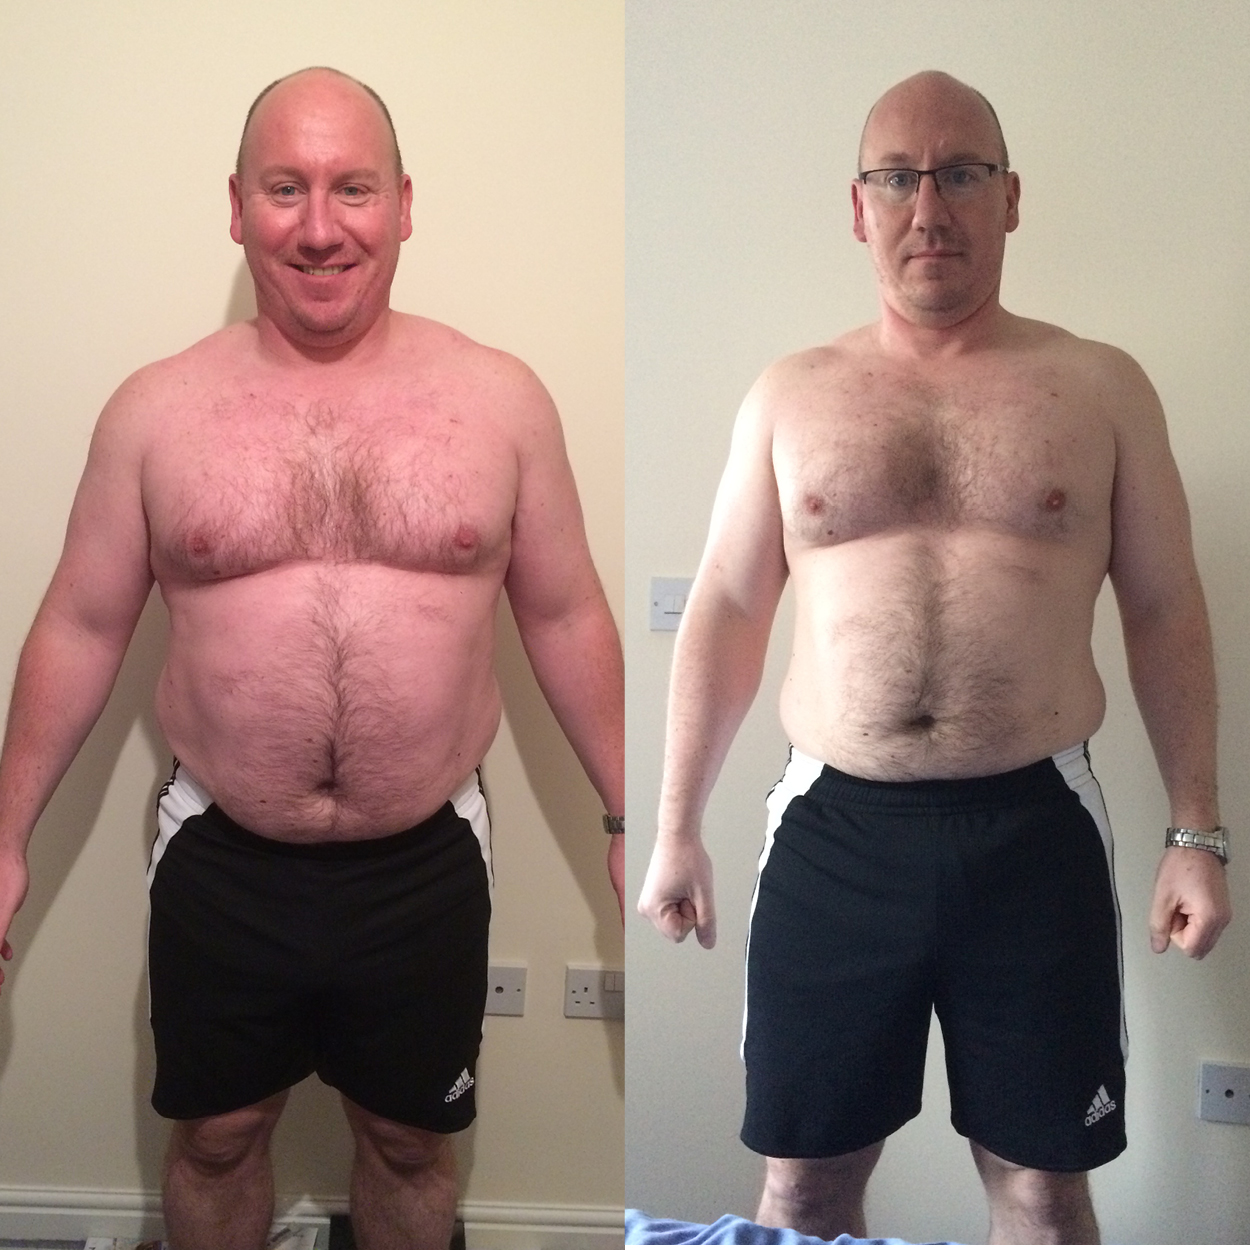 """SEAN CAVANAGH   """"I started the New Year with a mission to lose weight as most people do, over the years I've tried most fads/training ideas etc and even several PT's but never really had the results I wanted with them.  I'm fortunate enough to train at UFB and so had seen Adam around (he's hard to miss!) but what really sold me was when I saw the results he'd had with other clients on his web page, as soon as I saw that I knew I needed Adams help.My starting shape/size was similar to Brendan's so I was hoping for Adam to do something similar with me.  After an initial consultation where Adam finds out your current level of fitness etc and what you want to achieve, he then writes you a detailed bespoke Training and Nutrition plan covering each day.This is one of the major plus points of Adams training as it can be hard to keep the nutrition side on track and so having a detailed plan of what to eat helps so much with meal prep.Having a detailed training plan also gives you something to aim for and another benefit of Adams training is he gets you to focus on technique and also offers some great training videos if you are unsure about any exercises.Throughout the training Adam keeps things fresh by changing your routine at set periods so it doesn't get stale and will also take any feedback and tweak the training accordingly.Adams knowledge and attention to detail spurred me on to complete my 12 week course (whereas in the past I would have given up after not seeing the results I wanted), and seeing the results in the mirror and on the scales each week just motivated me to push myself harder.  I have just completed my 12 week program with Adam and have already signed up for more training, in the brief time I have been training with Adam I have seen such amazing results and have lost almost 2 stone already!I cannot recommend Adam highly enough and as can be seen from his website the results speak for themselves, whatever your goal is.I'm going to keep training with him u"""